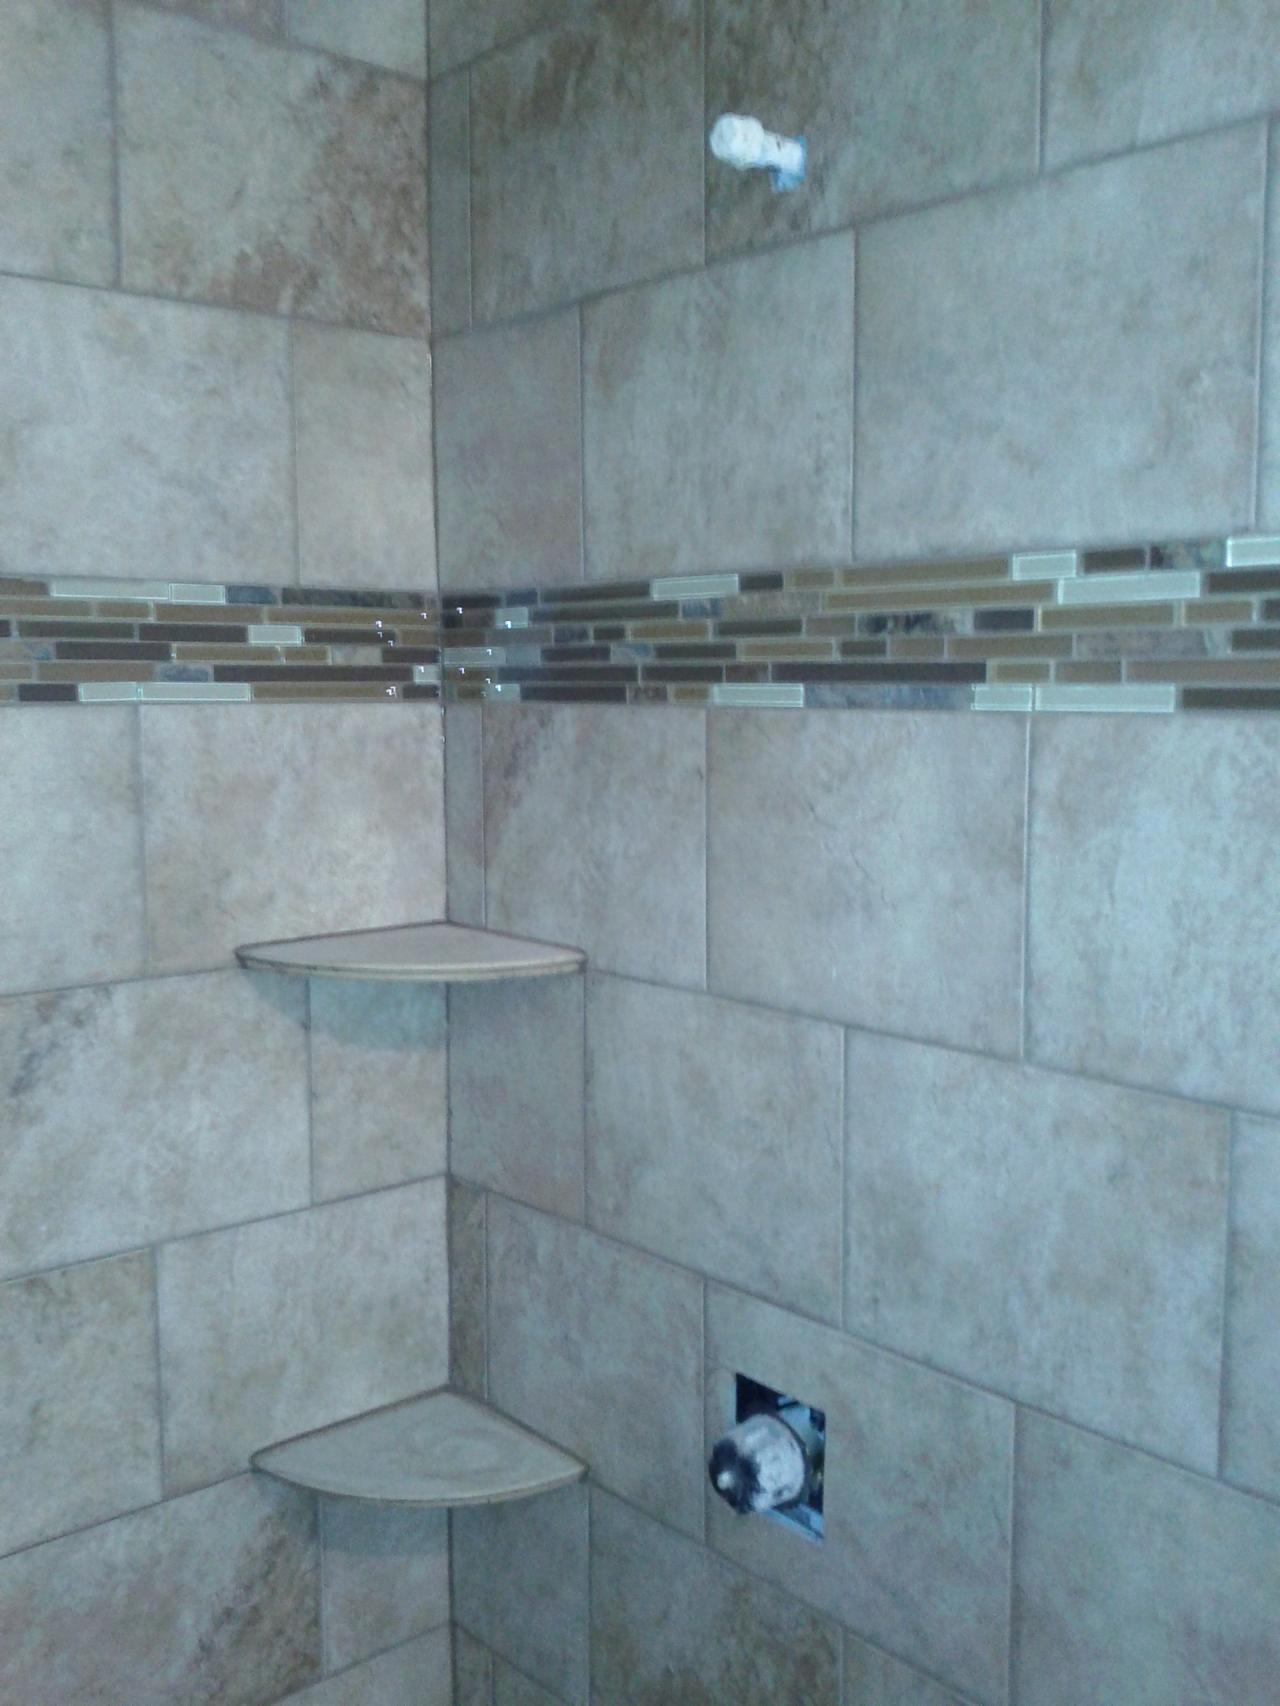 j-knockout-how-much-does-it-cost-to-tile-a-shower-wall-how-to-tile-a-shower-wall-with-glass-tile-how-to-grout-a-tile-shower-wall-how-to-clean-shower-wall-tile-grout-how-to-tile-glass-block